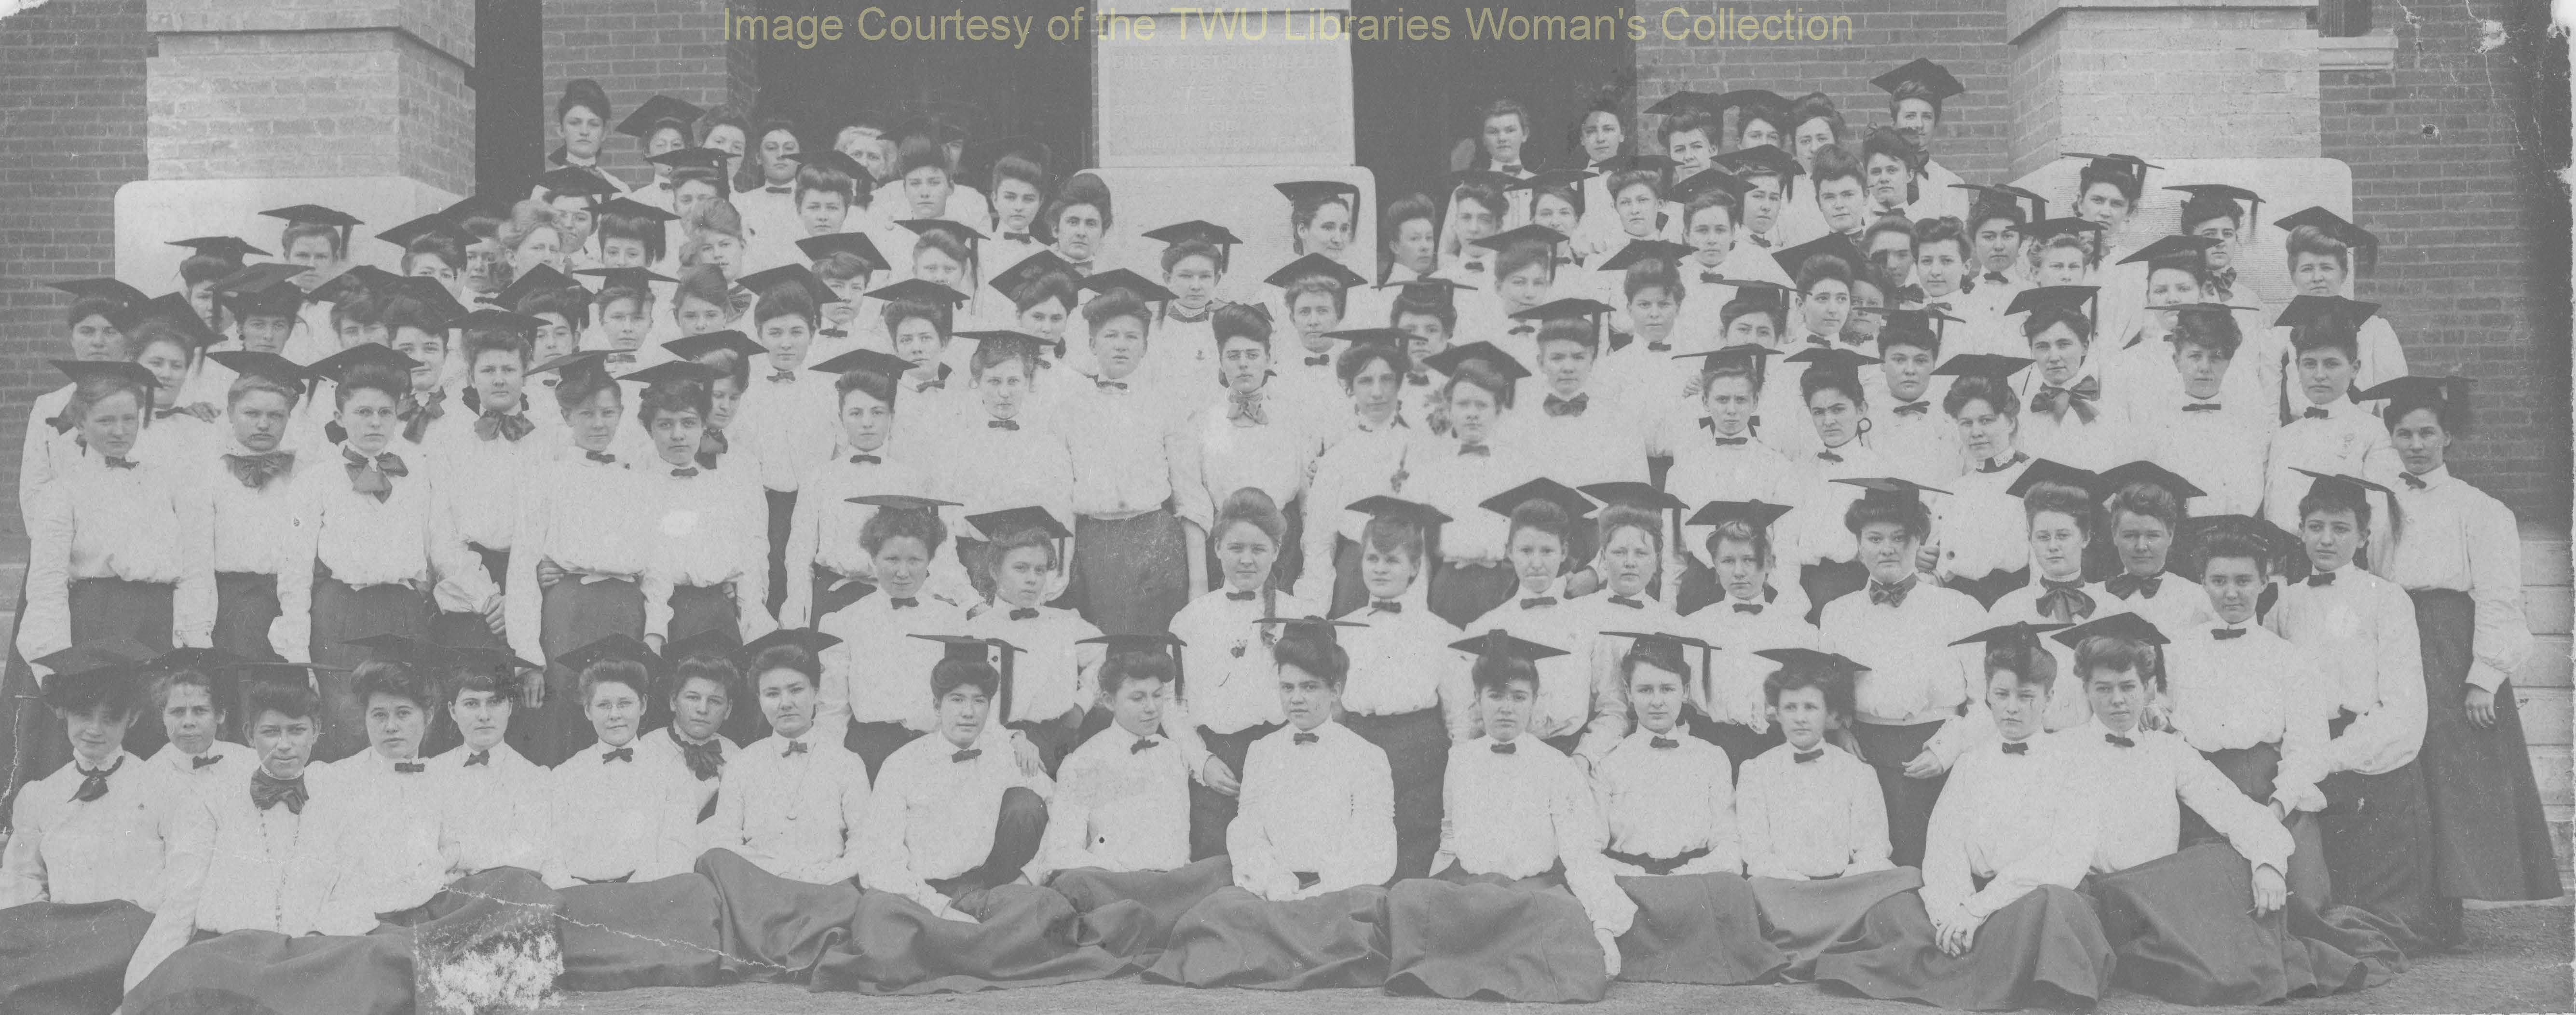 The first students of the Girls Industrial College wearing the required school uniforms on the steps of Old Main, 1903. The first year, only third-year or fourth-year high school students comprised the student body.  (Courtesy TWU Woman's Collection)